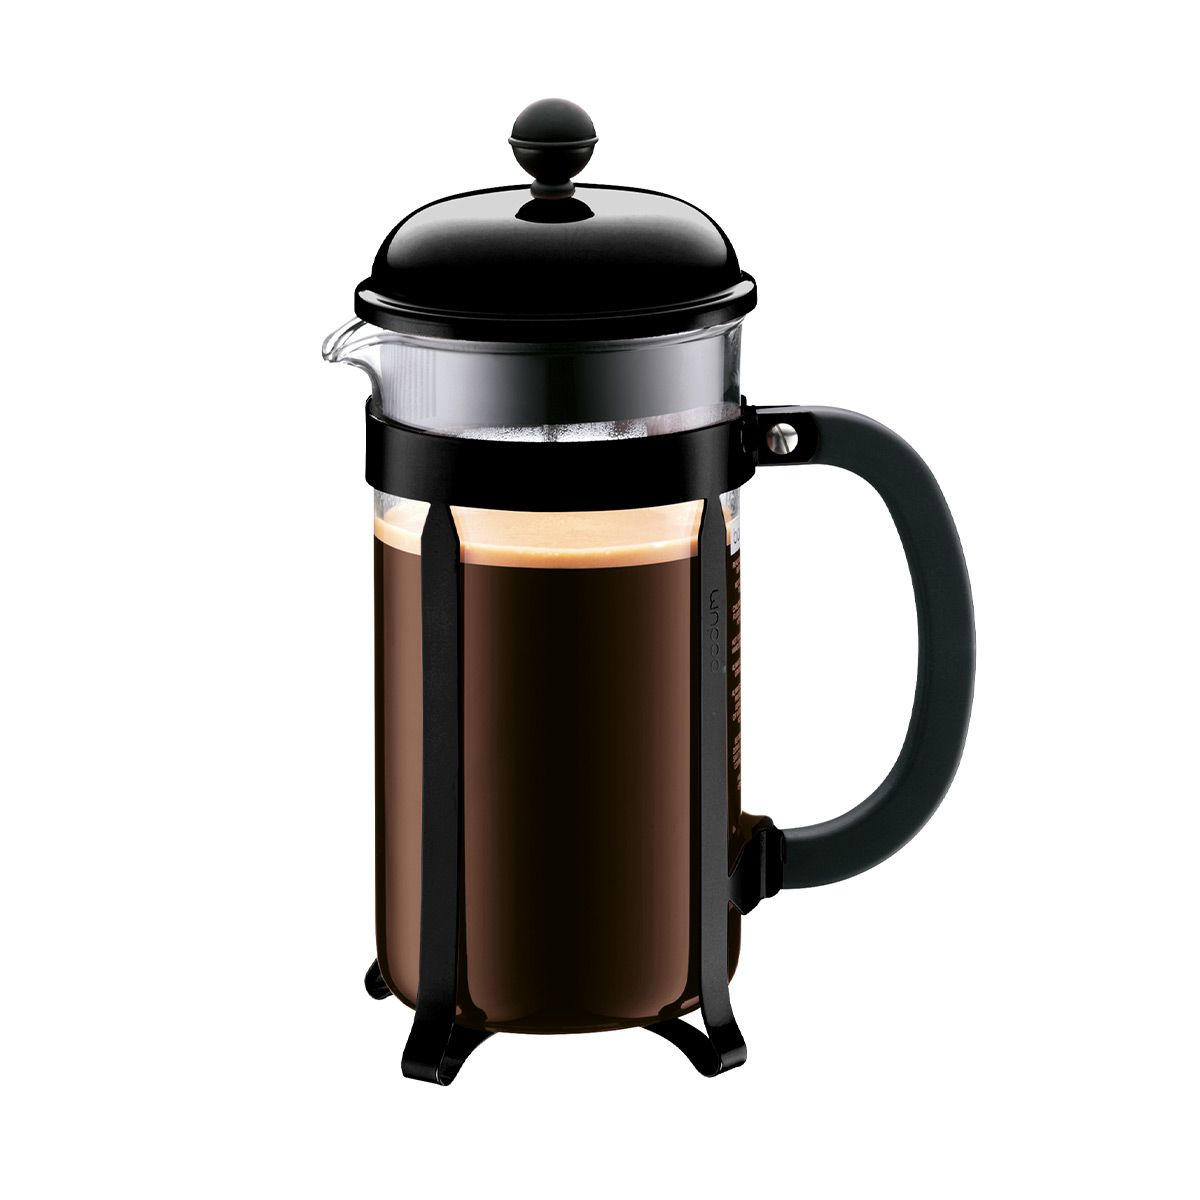 Bodum Chambord French Press Coffee Maker - 8 Cup Black